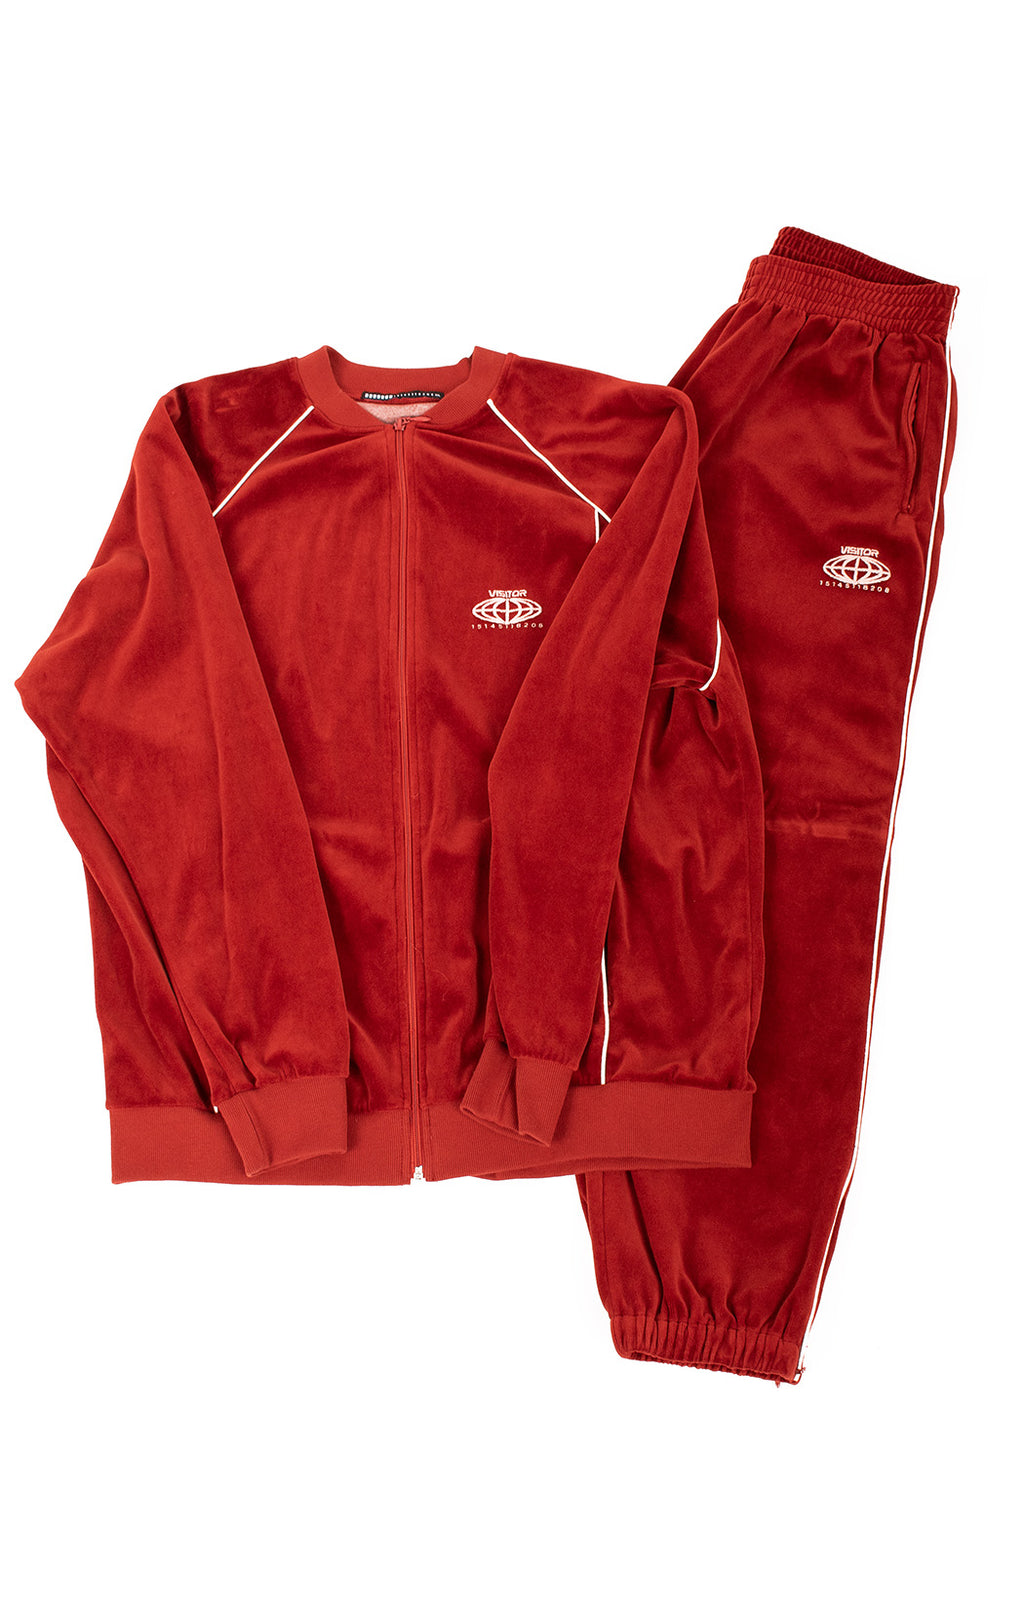 Front view of VISITOR Track suit Size: 2XL